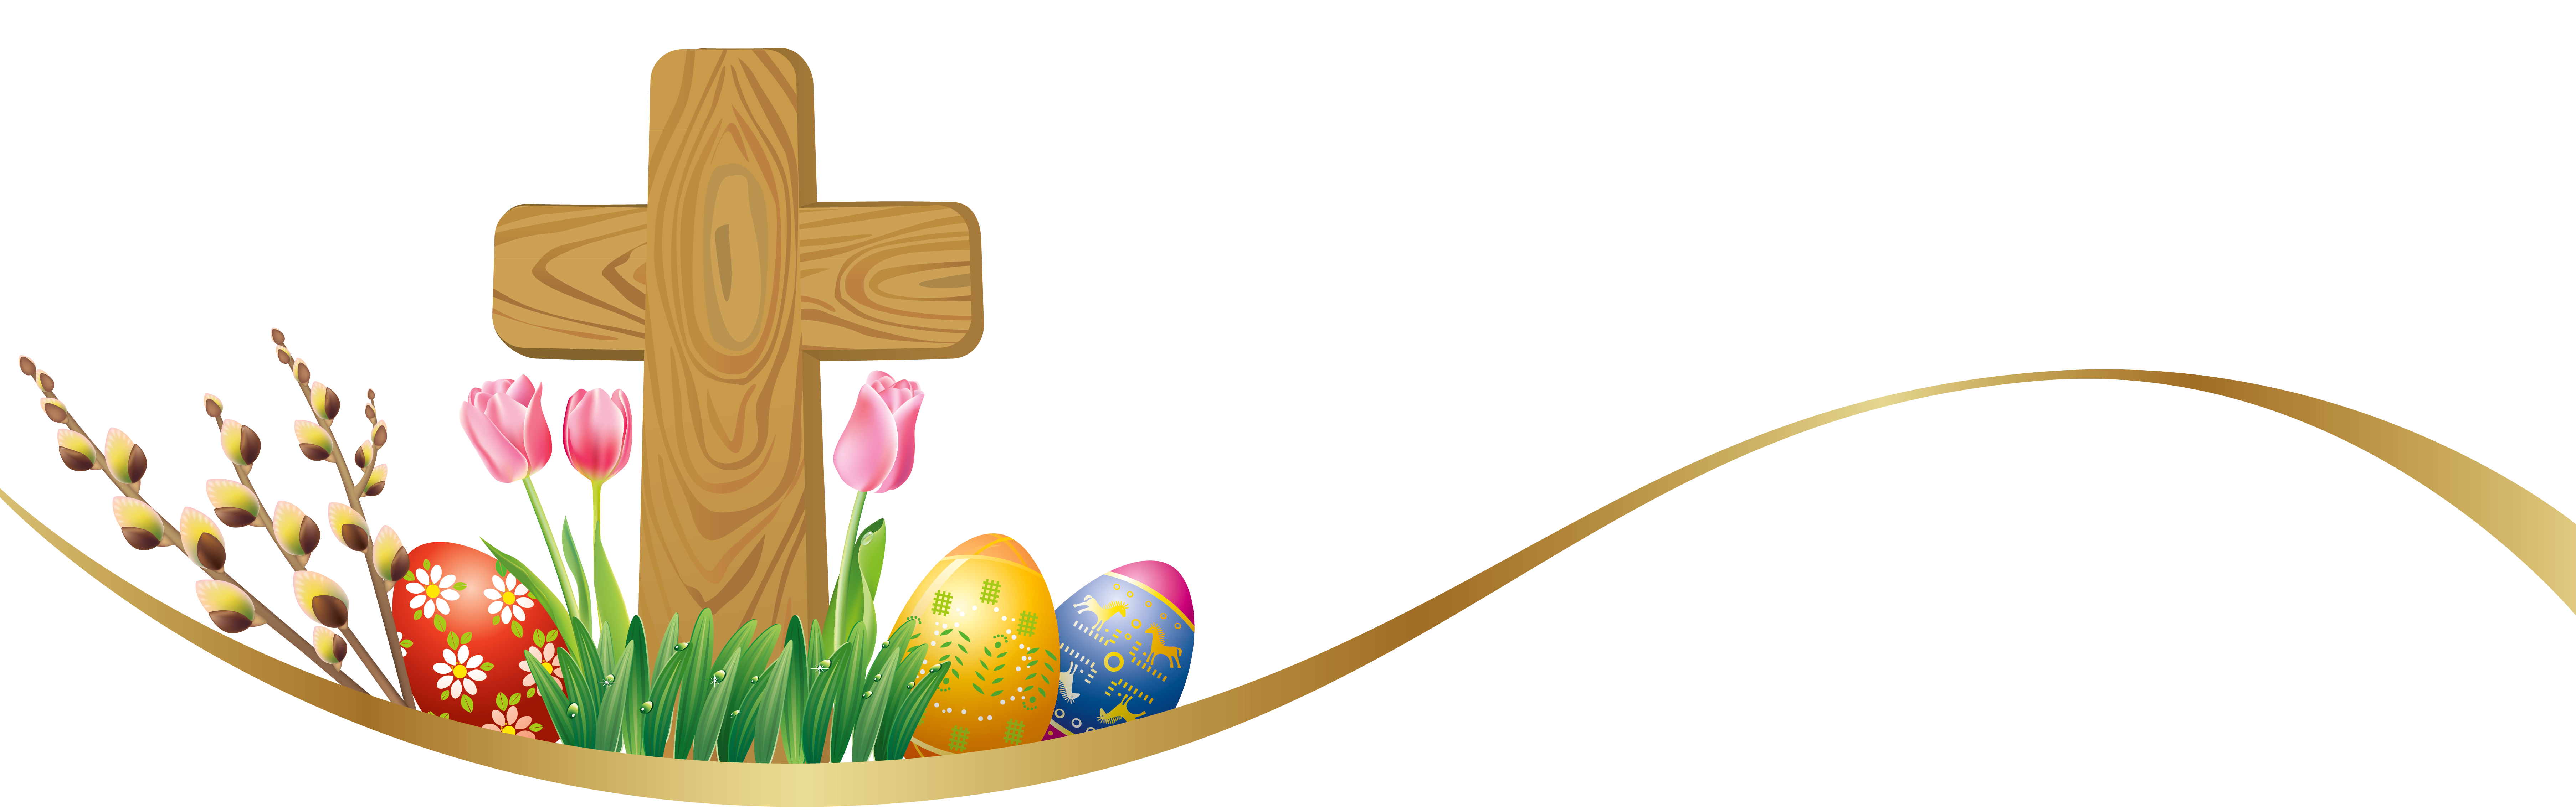 Easter Deco with Eggs and Cross PNG Clipart Picture.